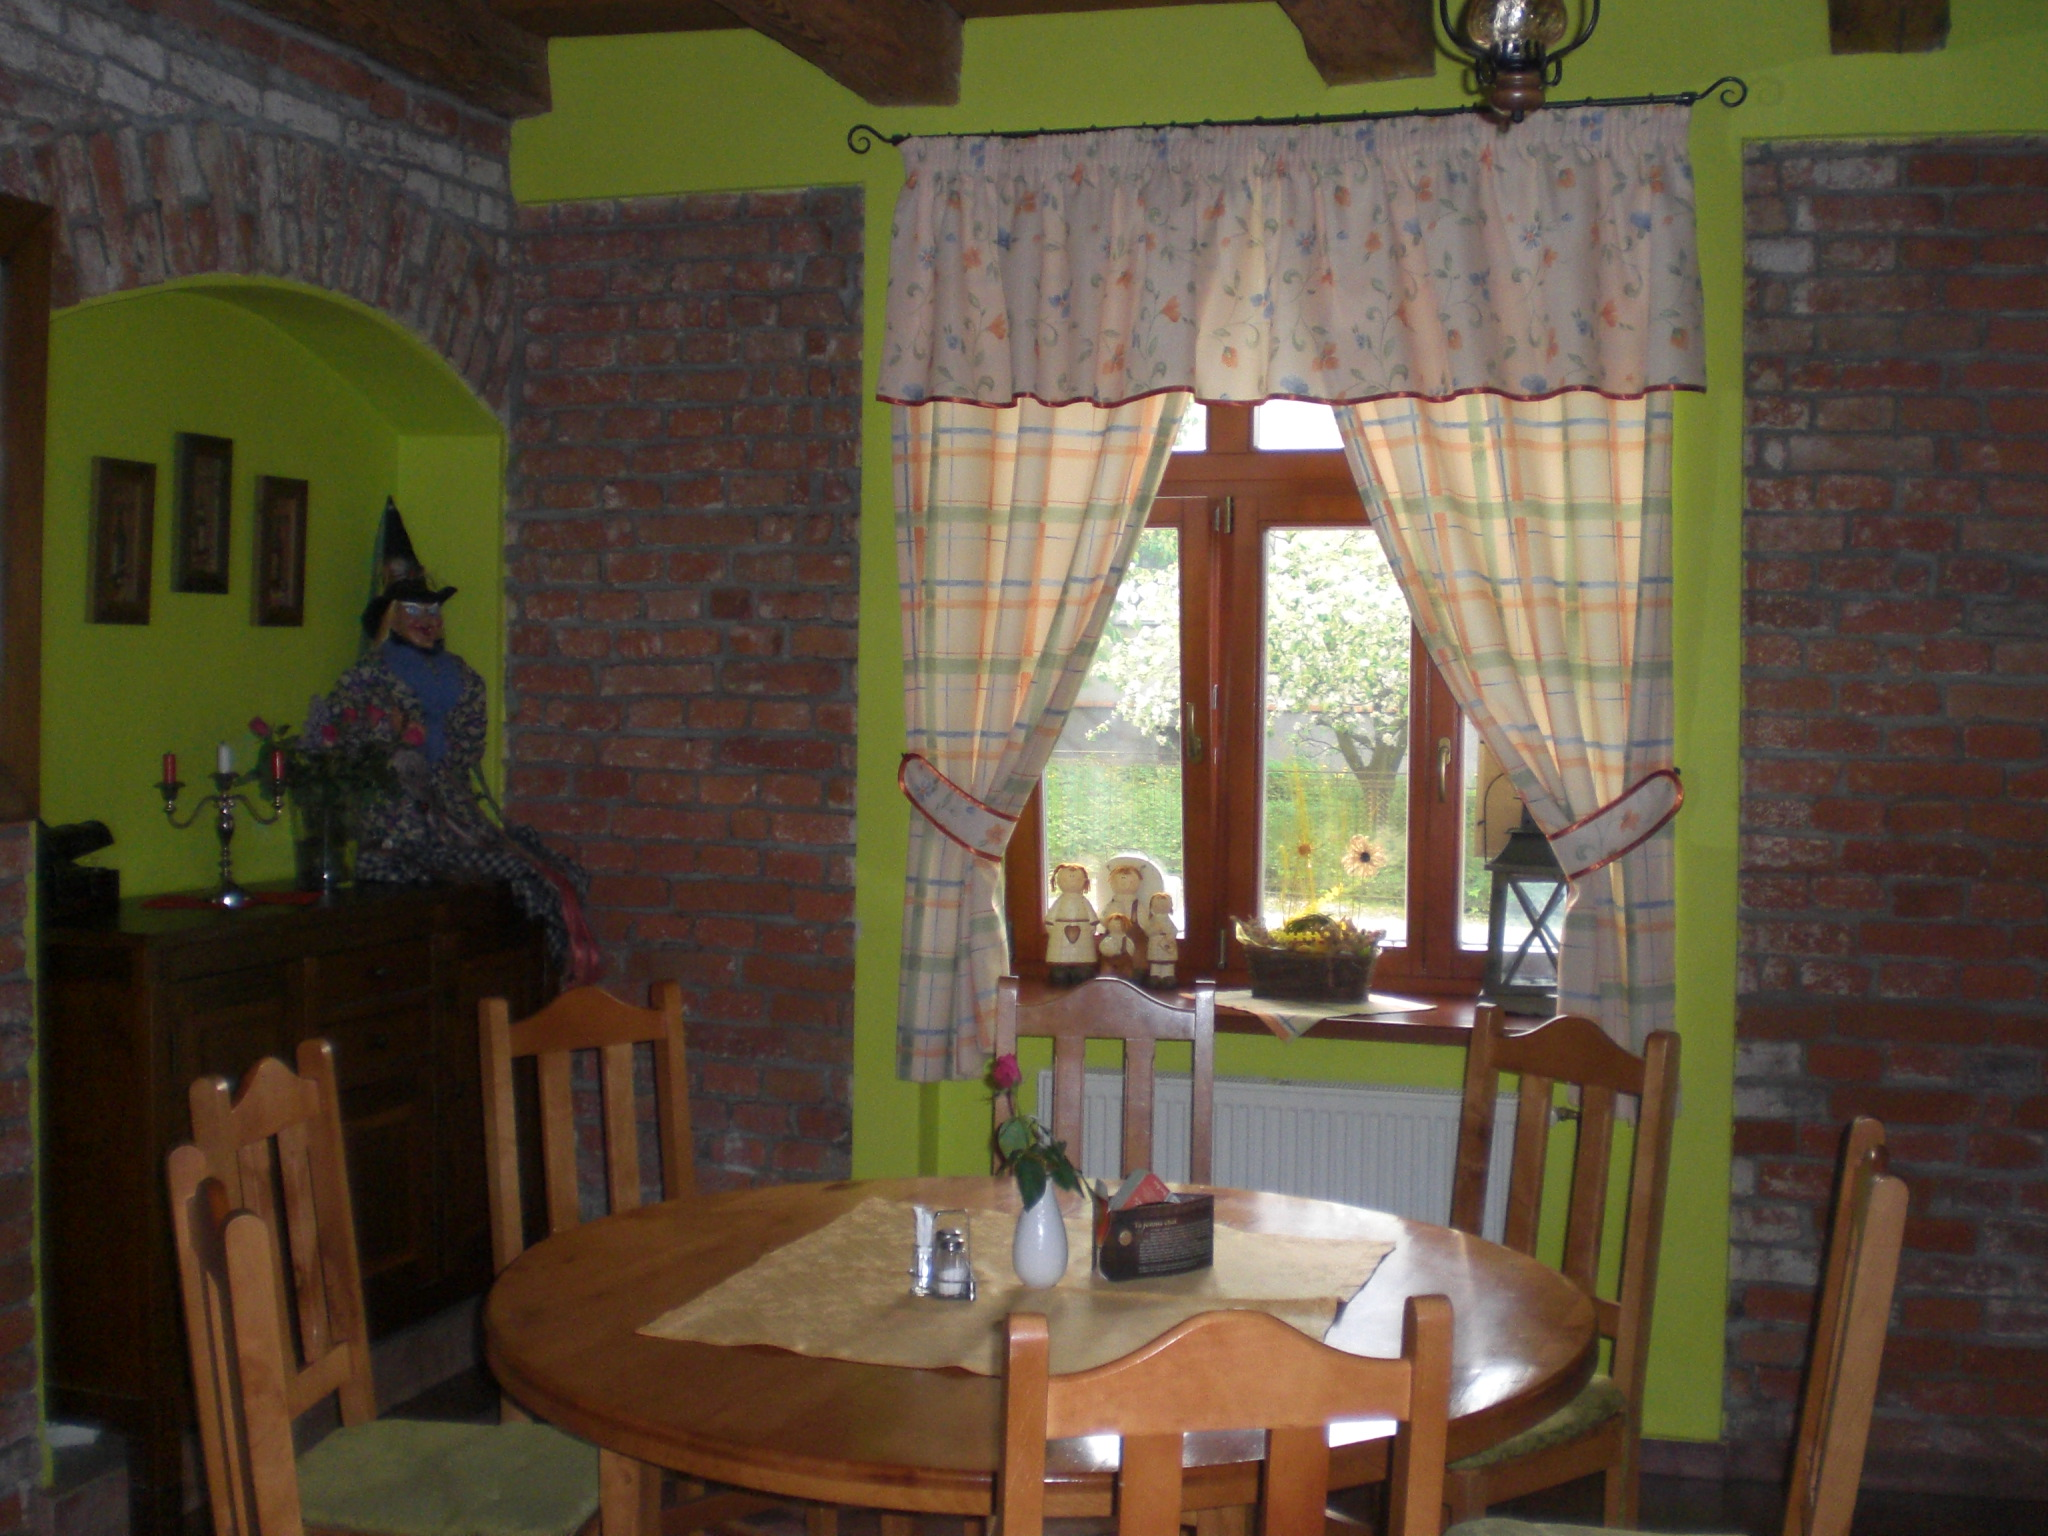 Accommodation Tramky Jeseniky lodging house / rooming house non-stop